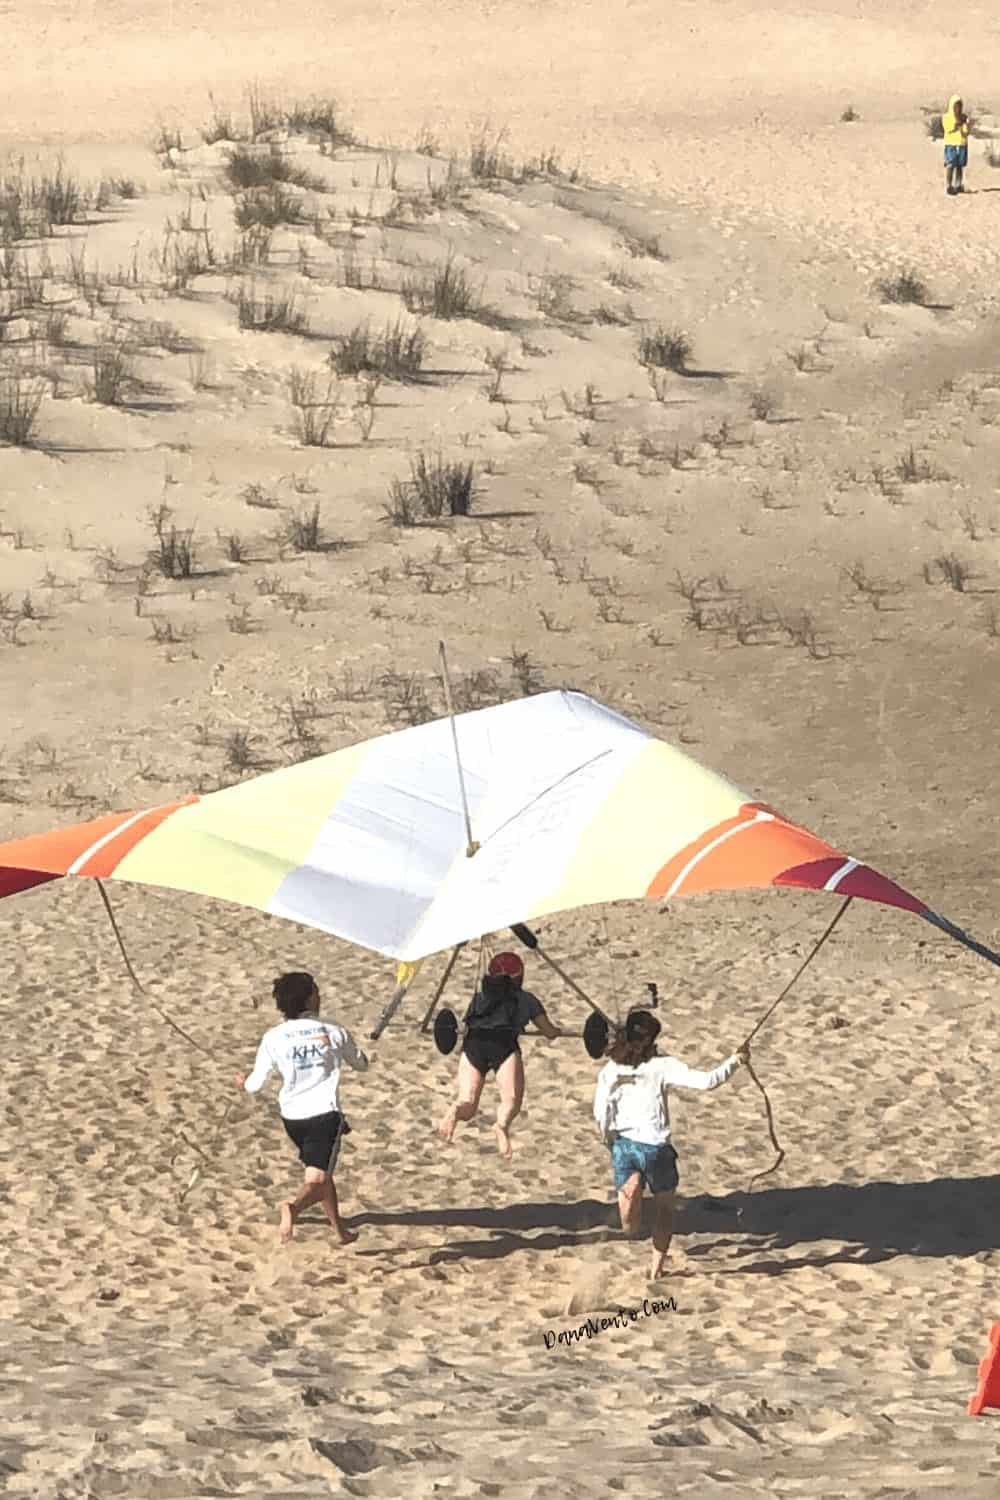 Hang Glider In Low of Dune with spectators